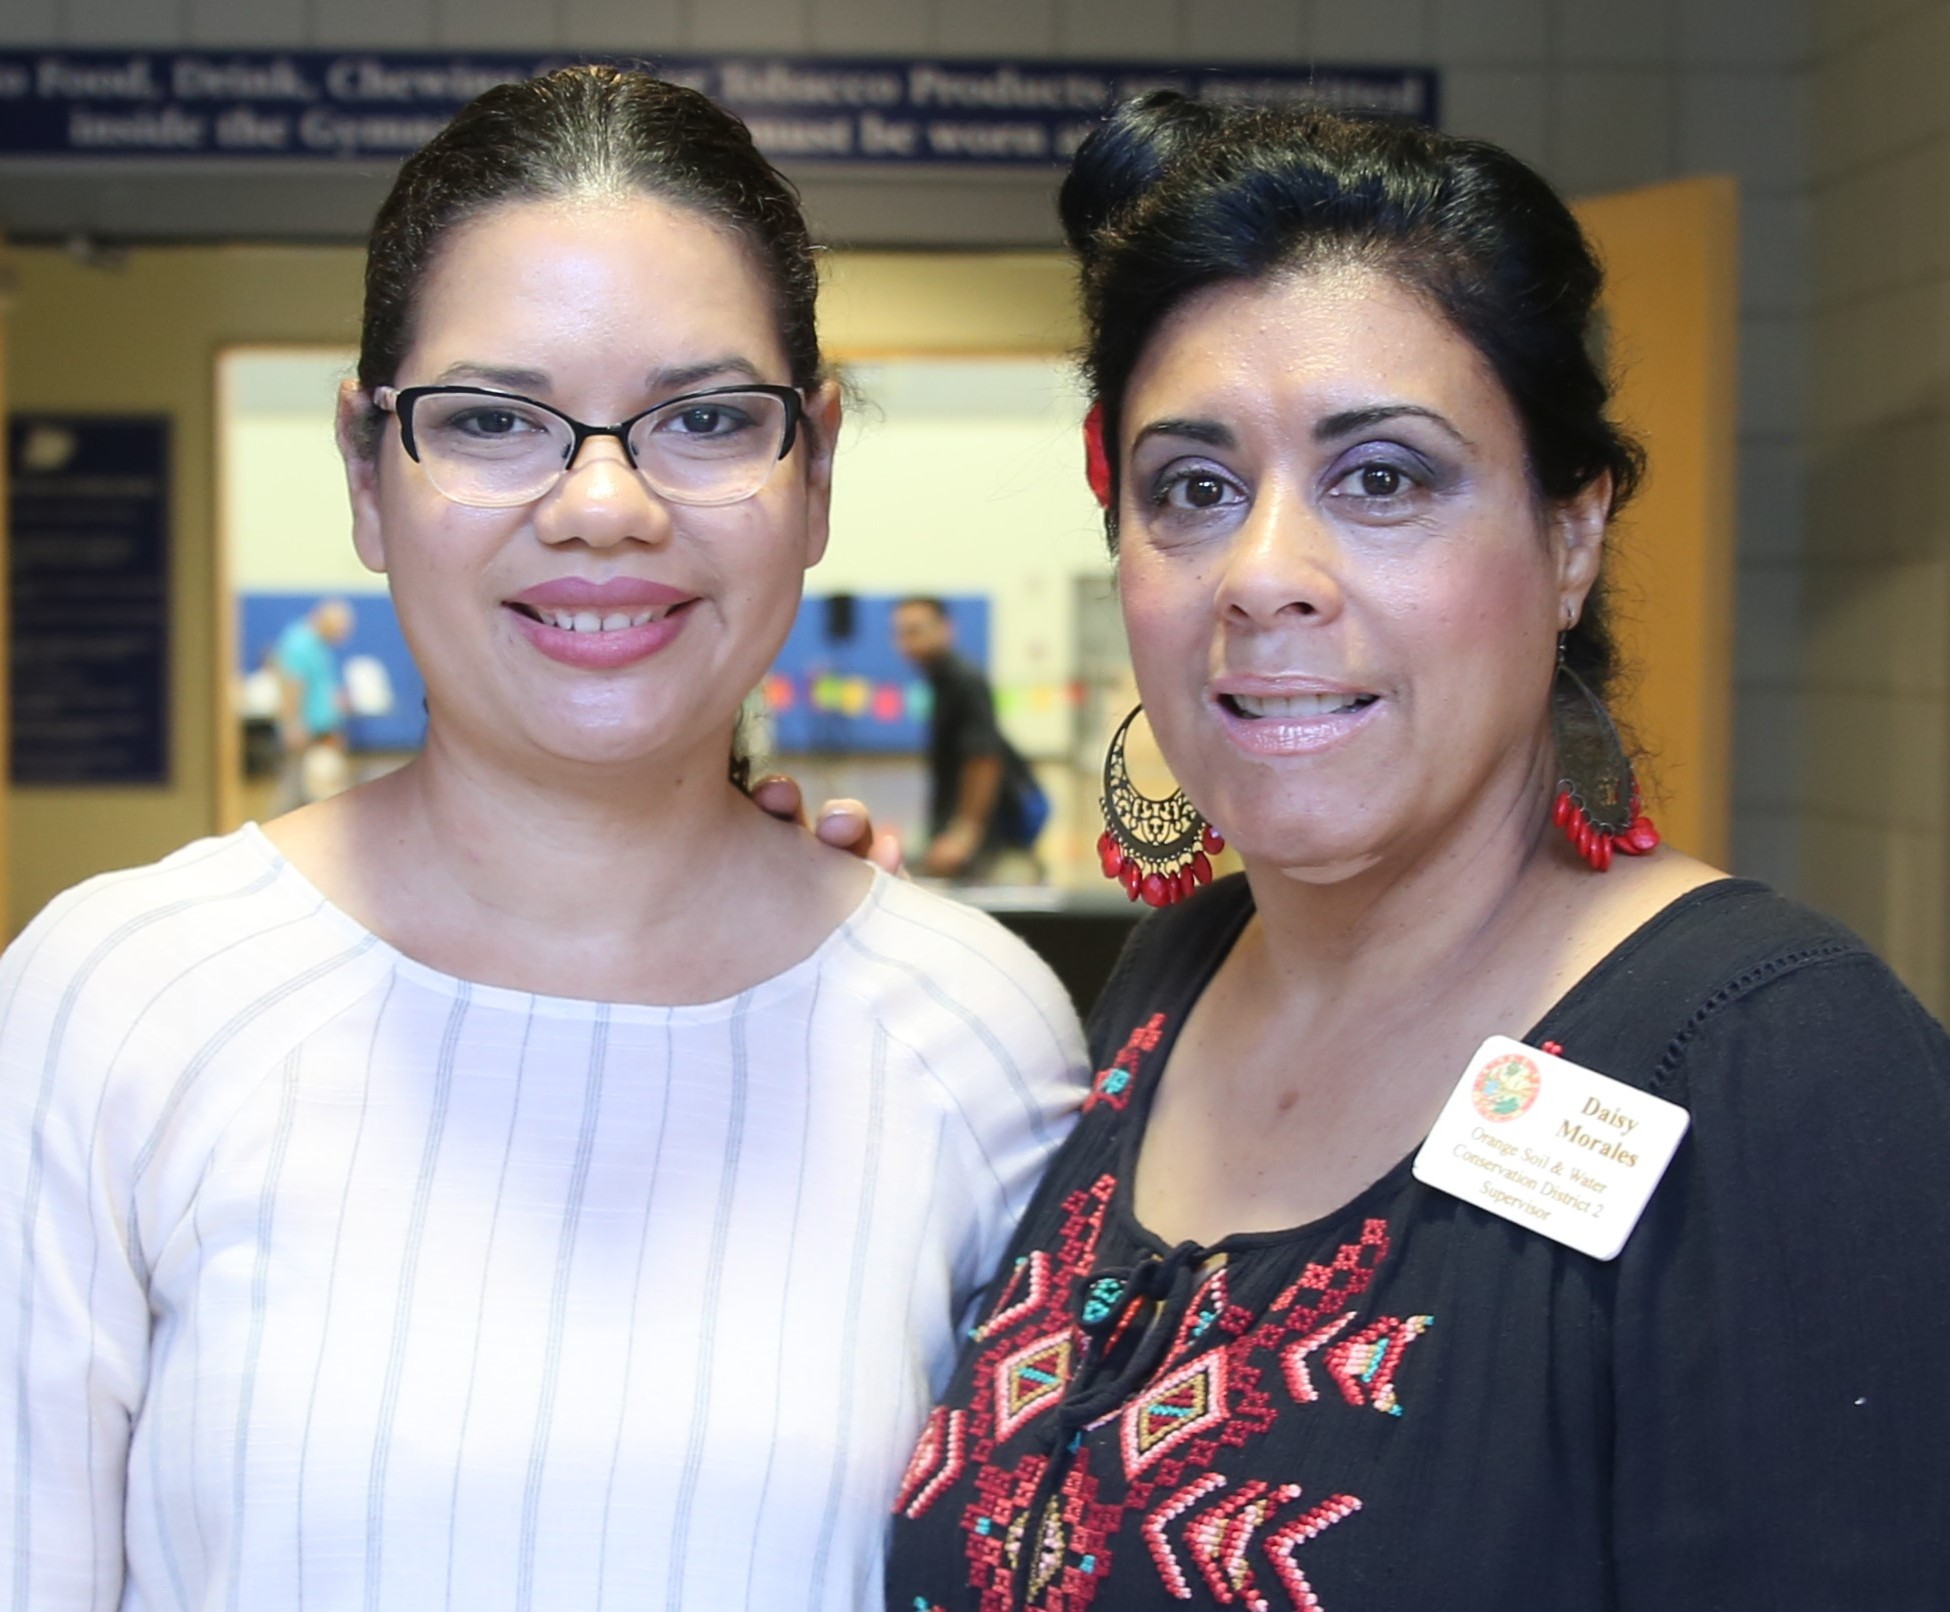 Orange Soil & Water Conservation District Supervisor Daisy Morales (right) joined Orange County Commissioner Emily Bonilla during her Hispanic Heritage Month celebration Fiesta Cultural at South Econ Recreation Center Sunday, October 14, 2018. Photo: Willie David/Florida National News.